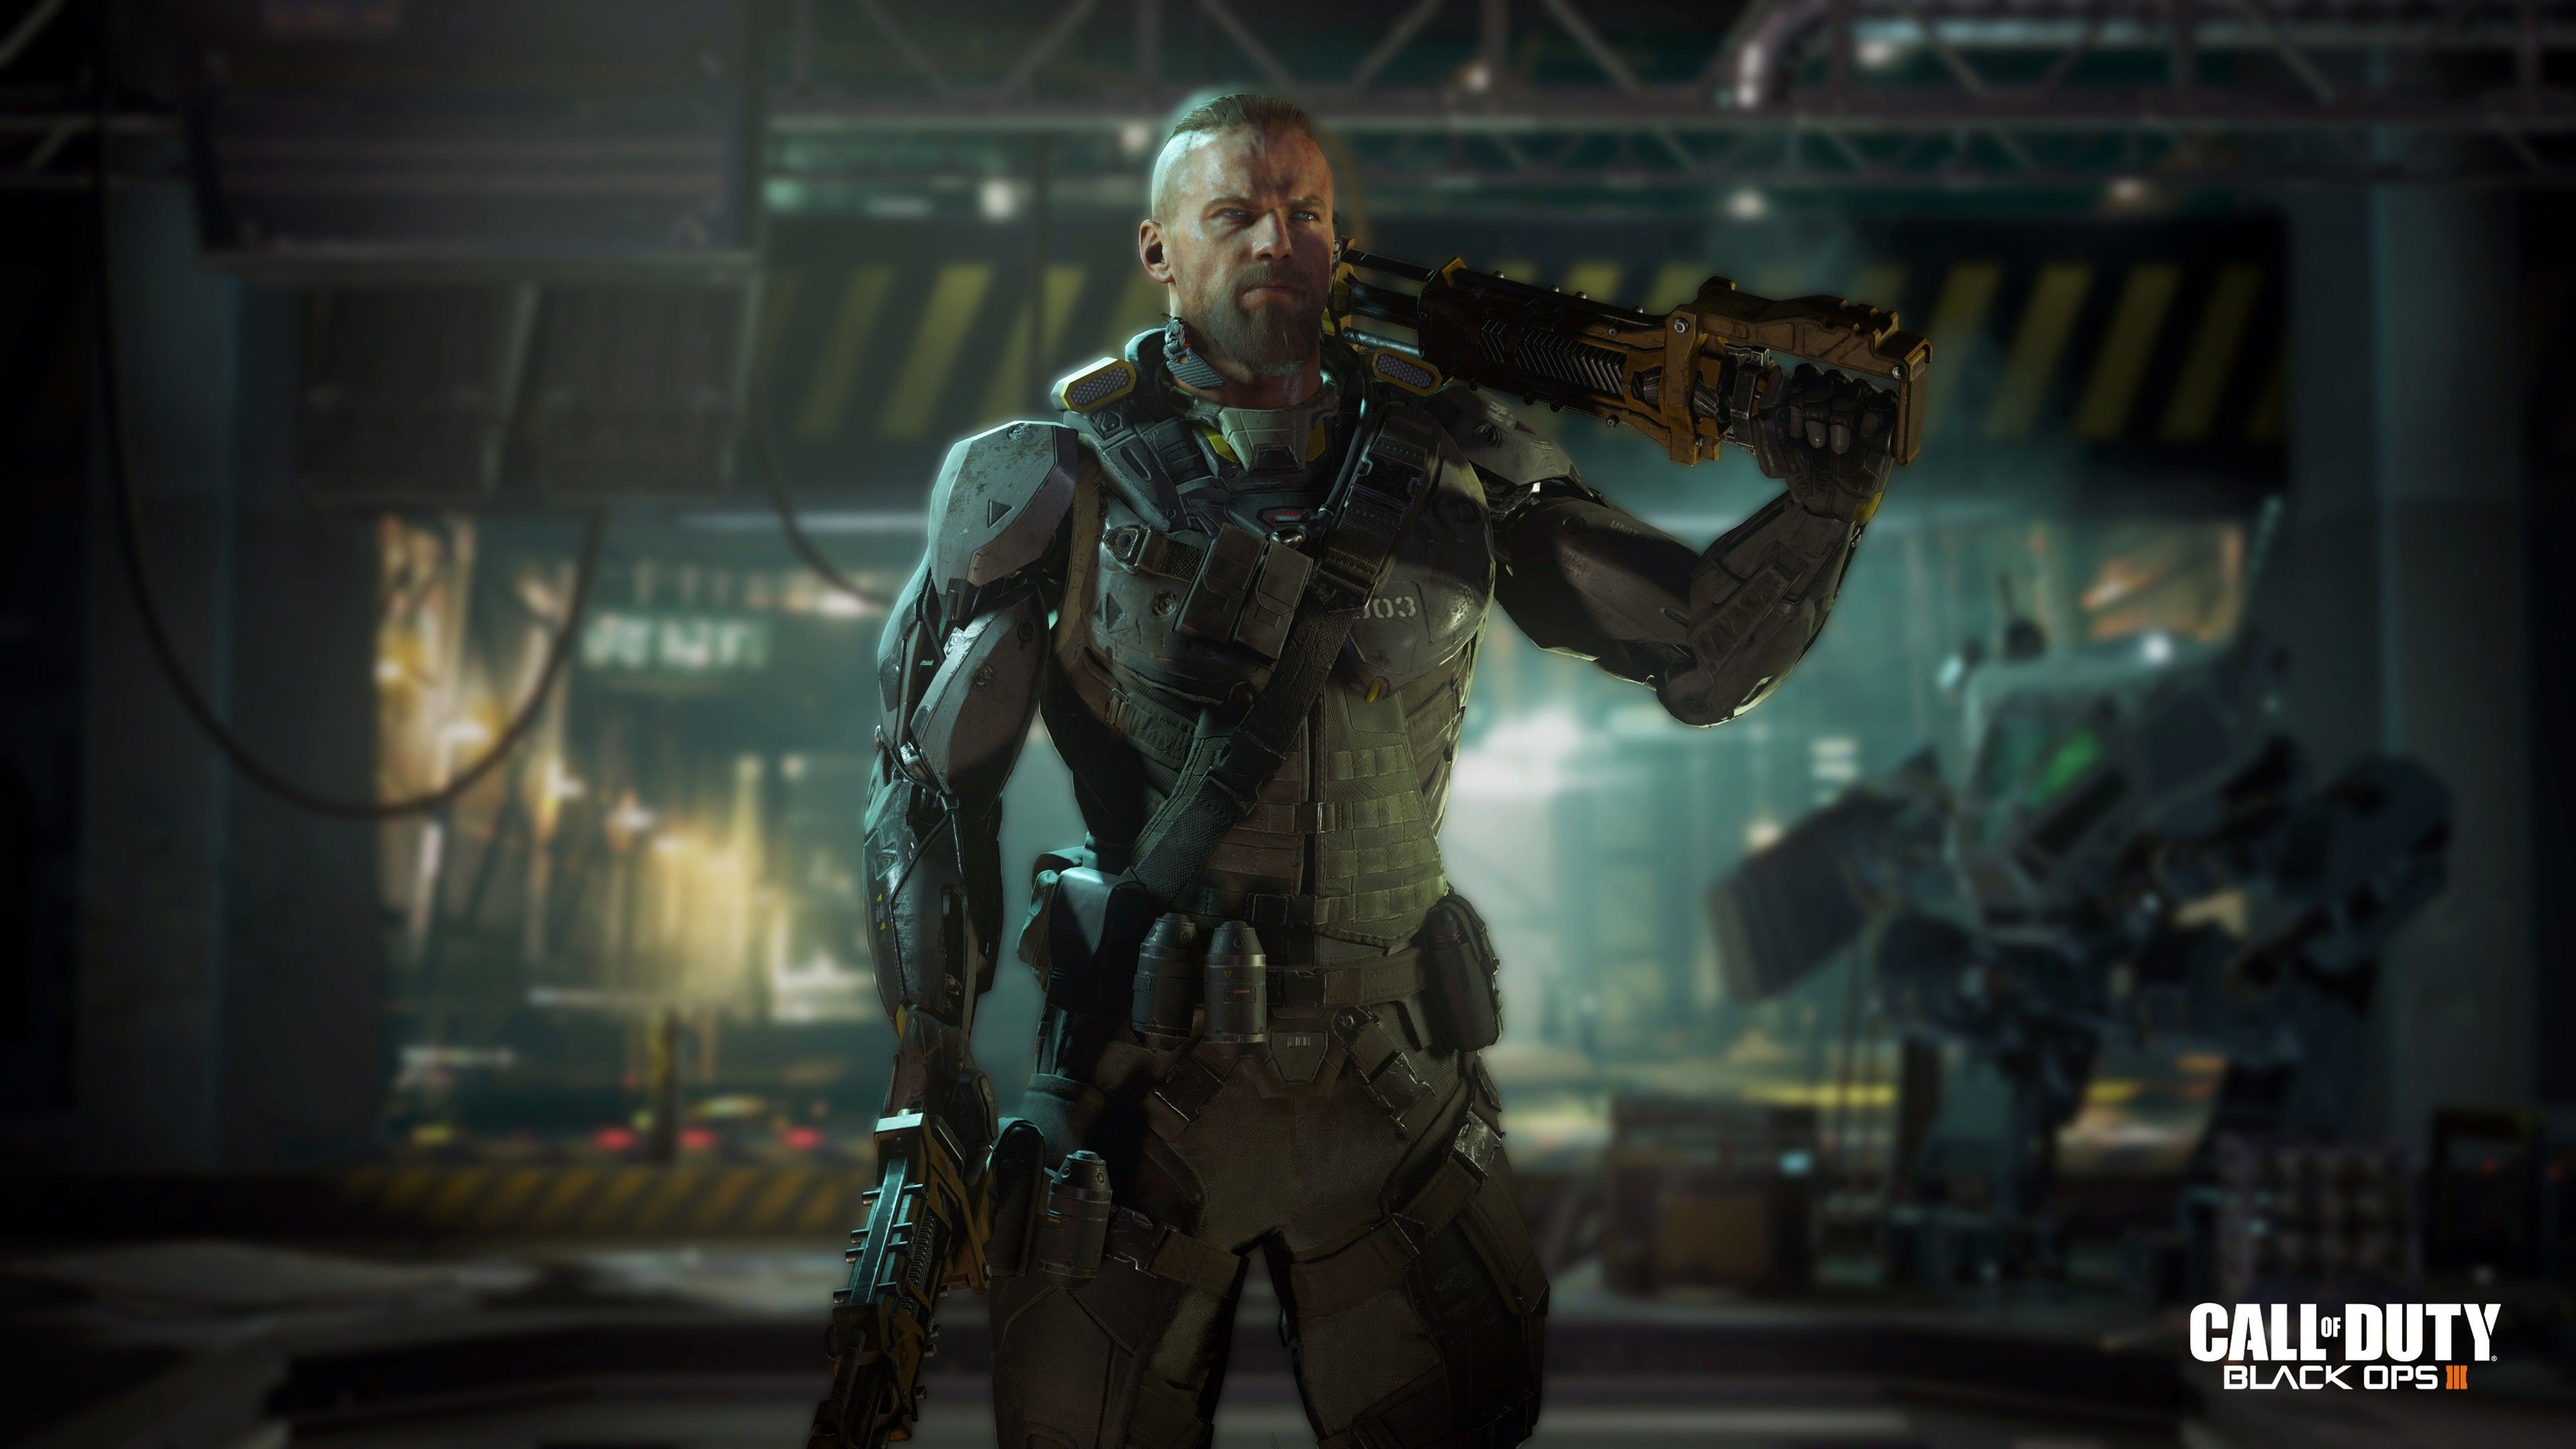 Res: 3840x2160, Call of Duty Black Ops 3 Wallpapers | HD Wallpapers